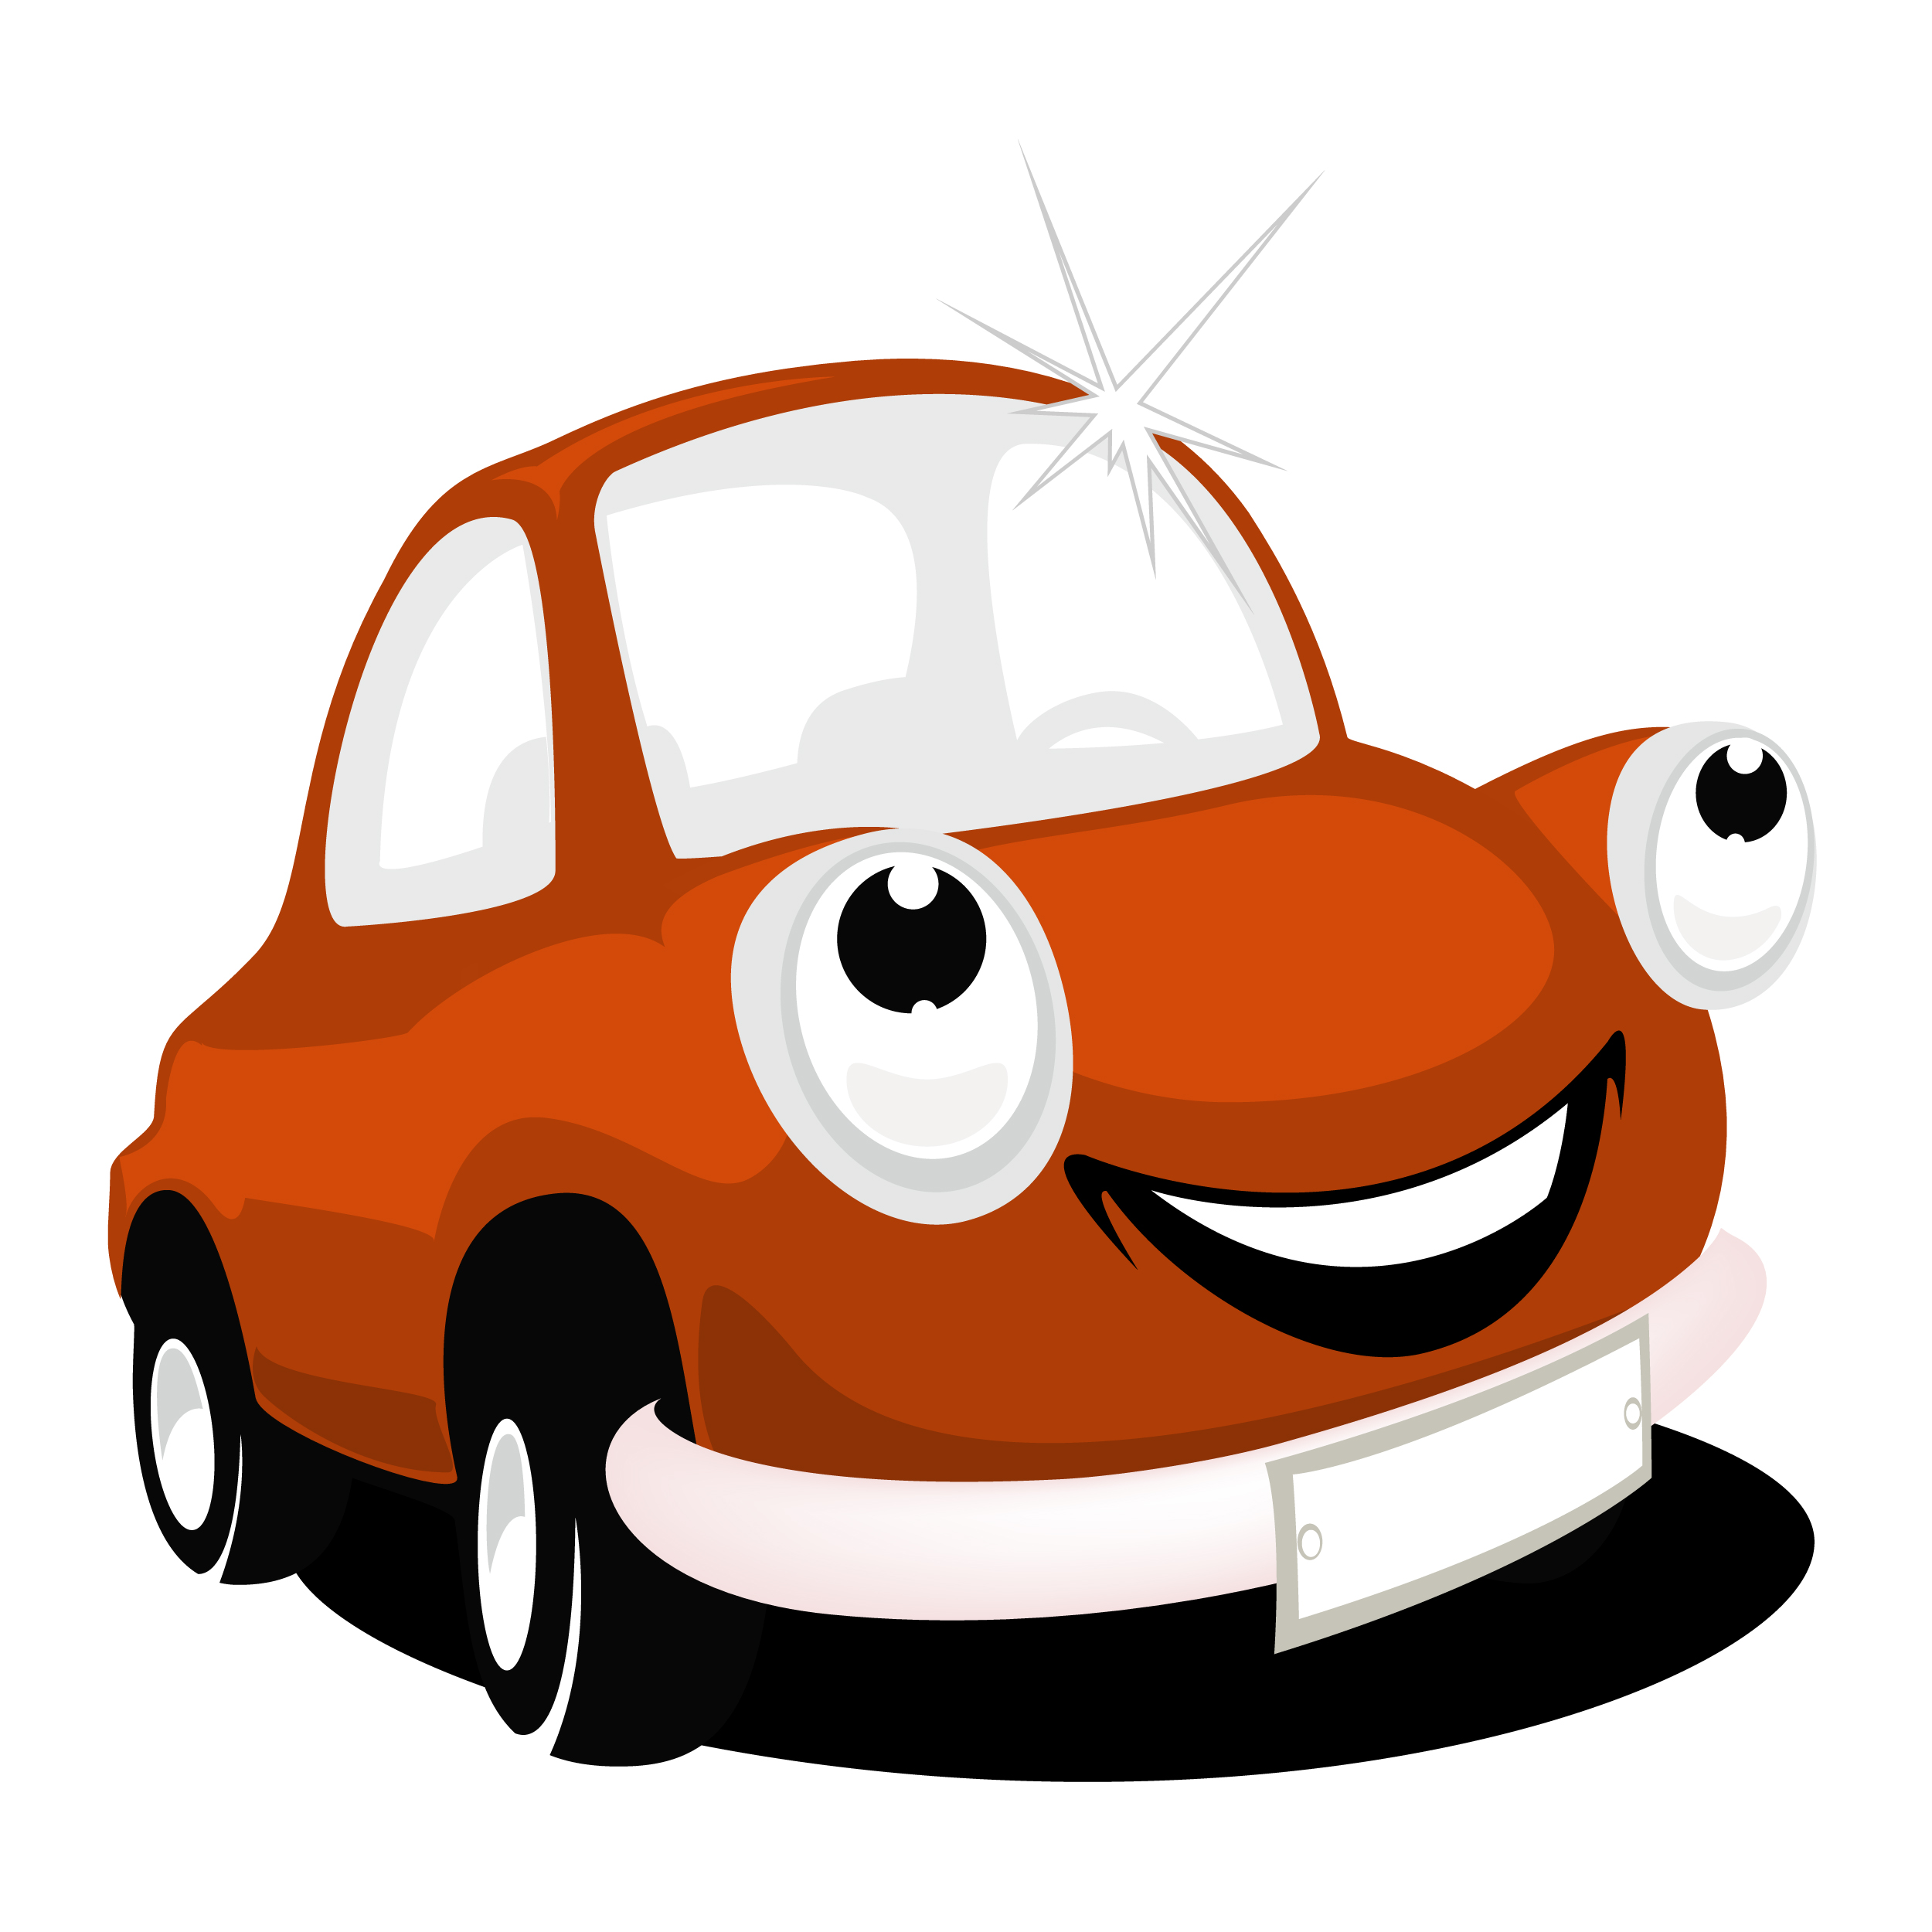 12 Photos Of Cartoon Cars Free Cliparts That You Can Download To You